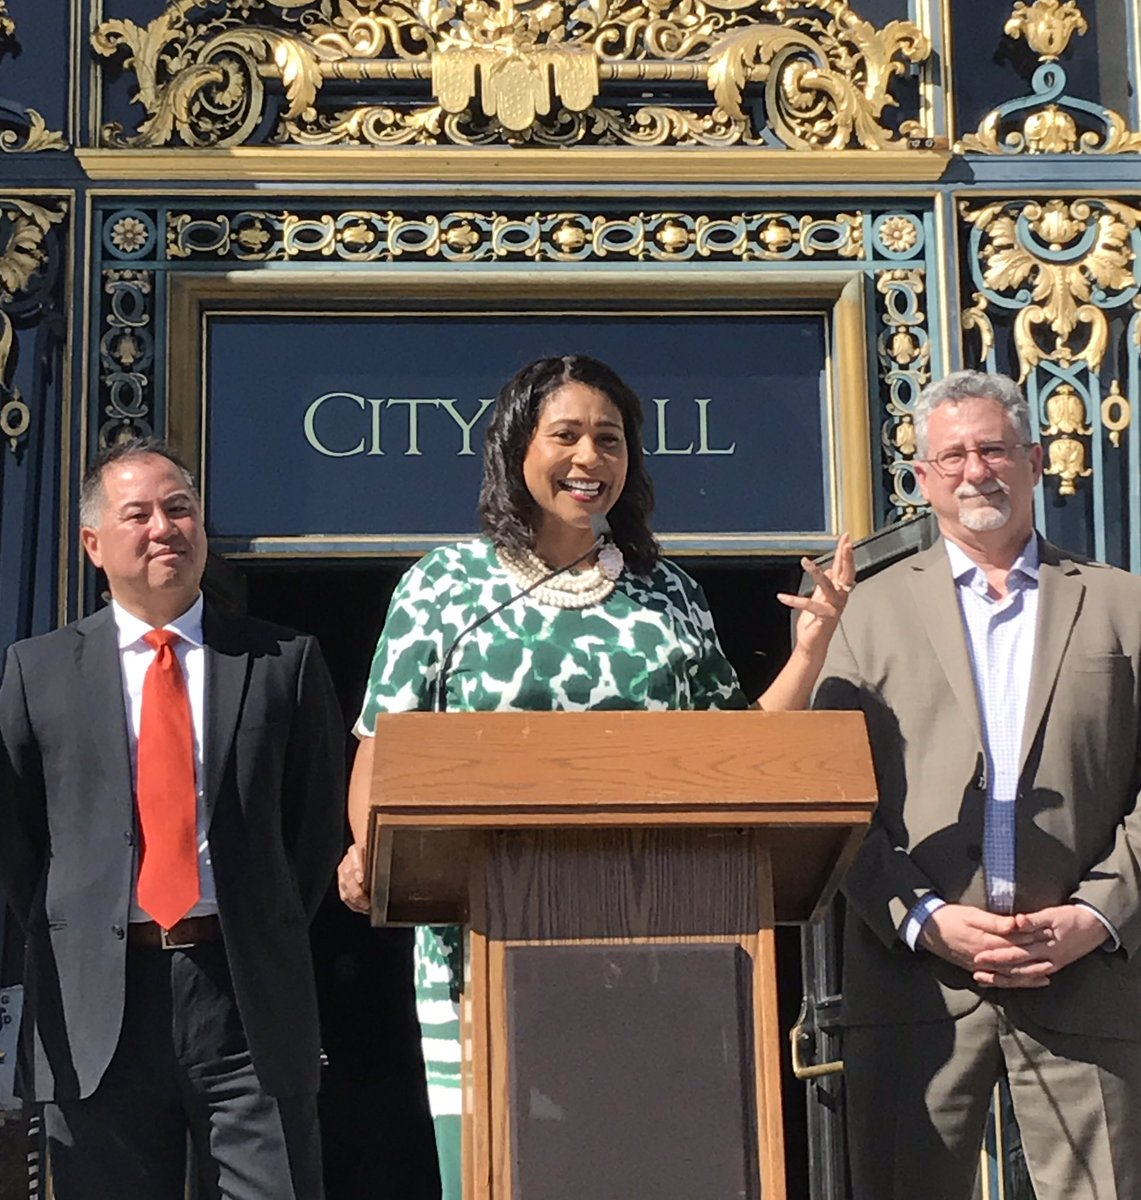 San Francisco mayor remembered as civil servant